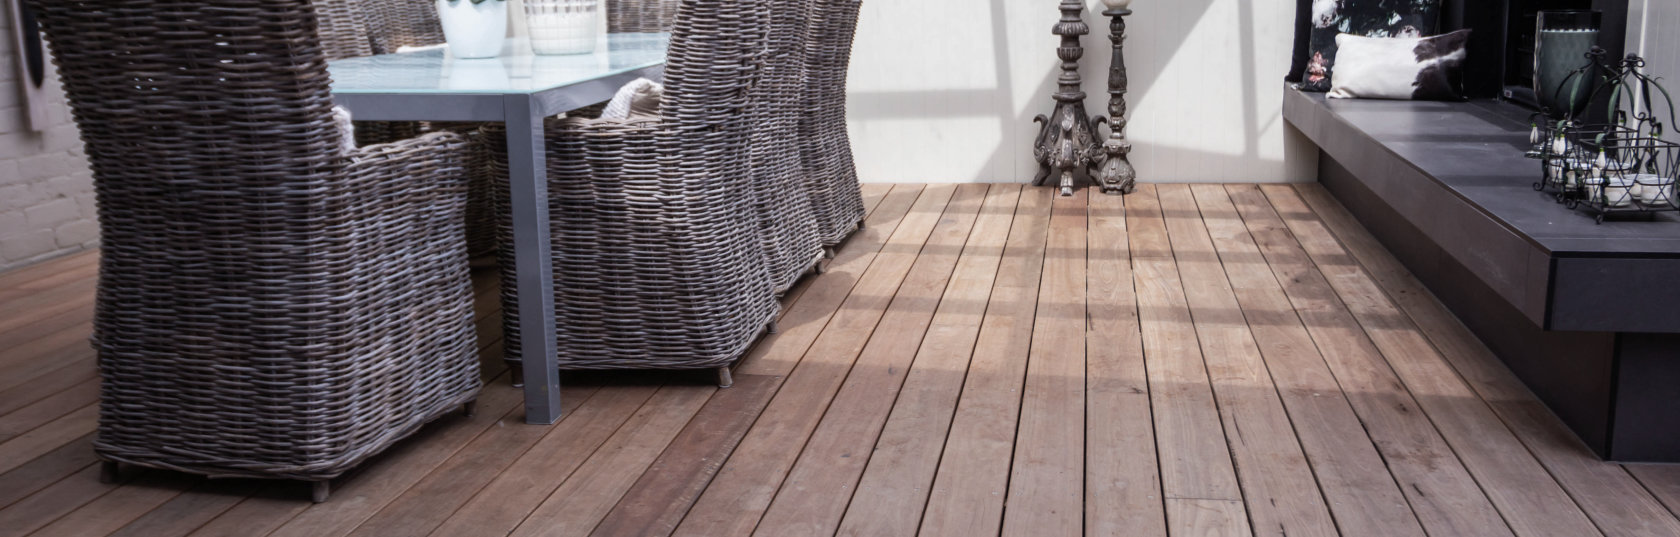 Durable Hardwood Decking Eliminates Need for Chemical Treatments